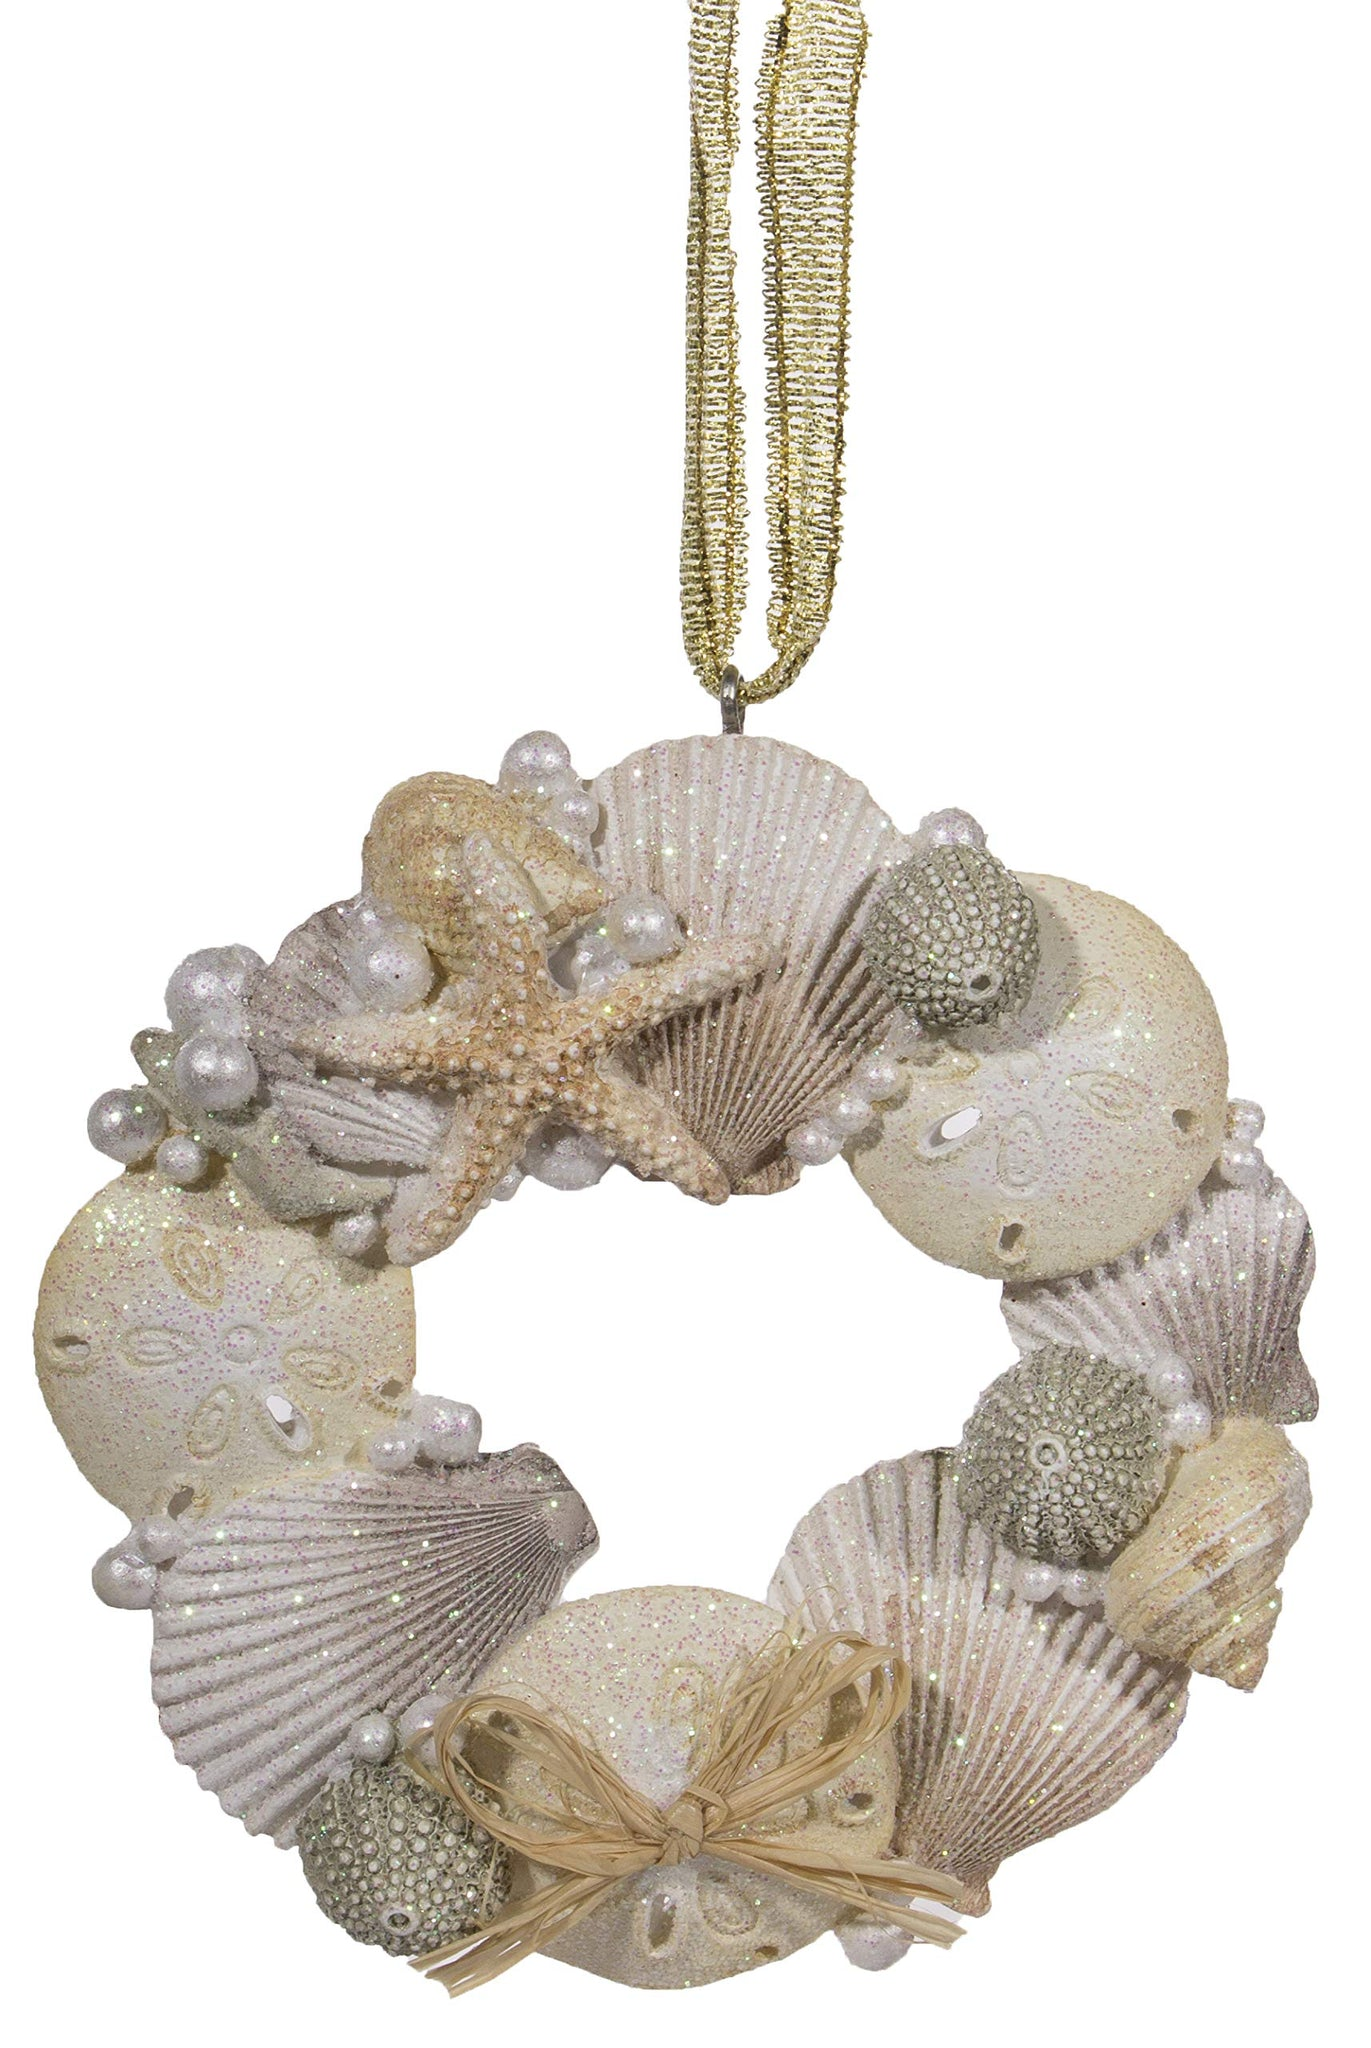 Cape Shore Resin Wreath w/Shells and Sea Life Ornament